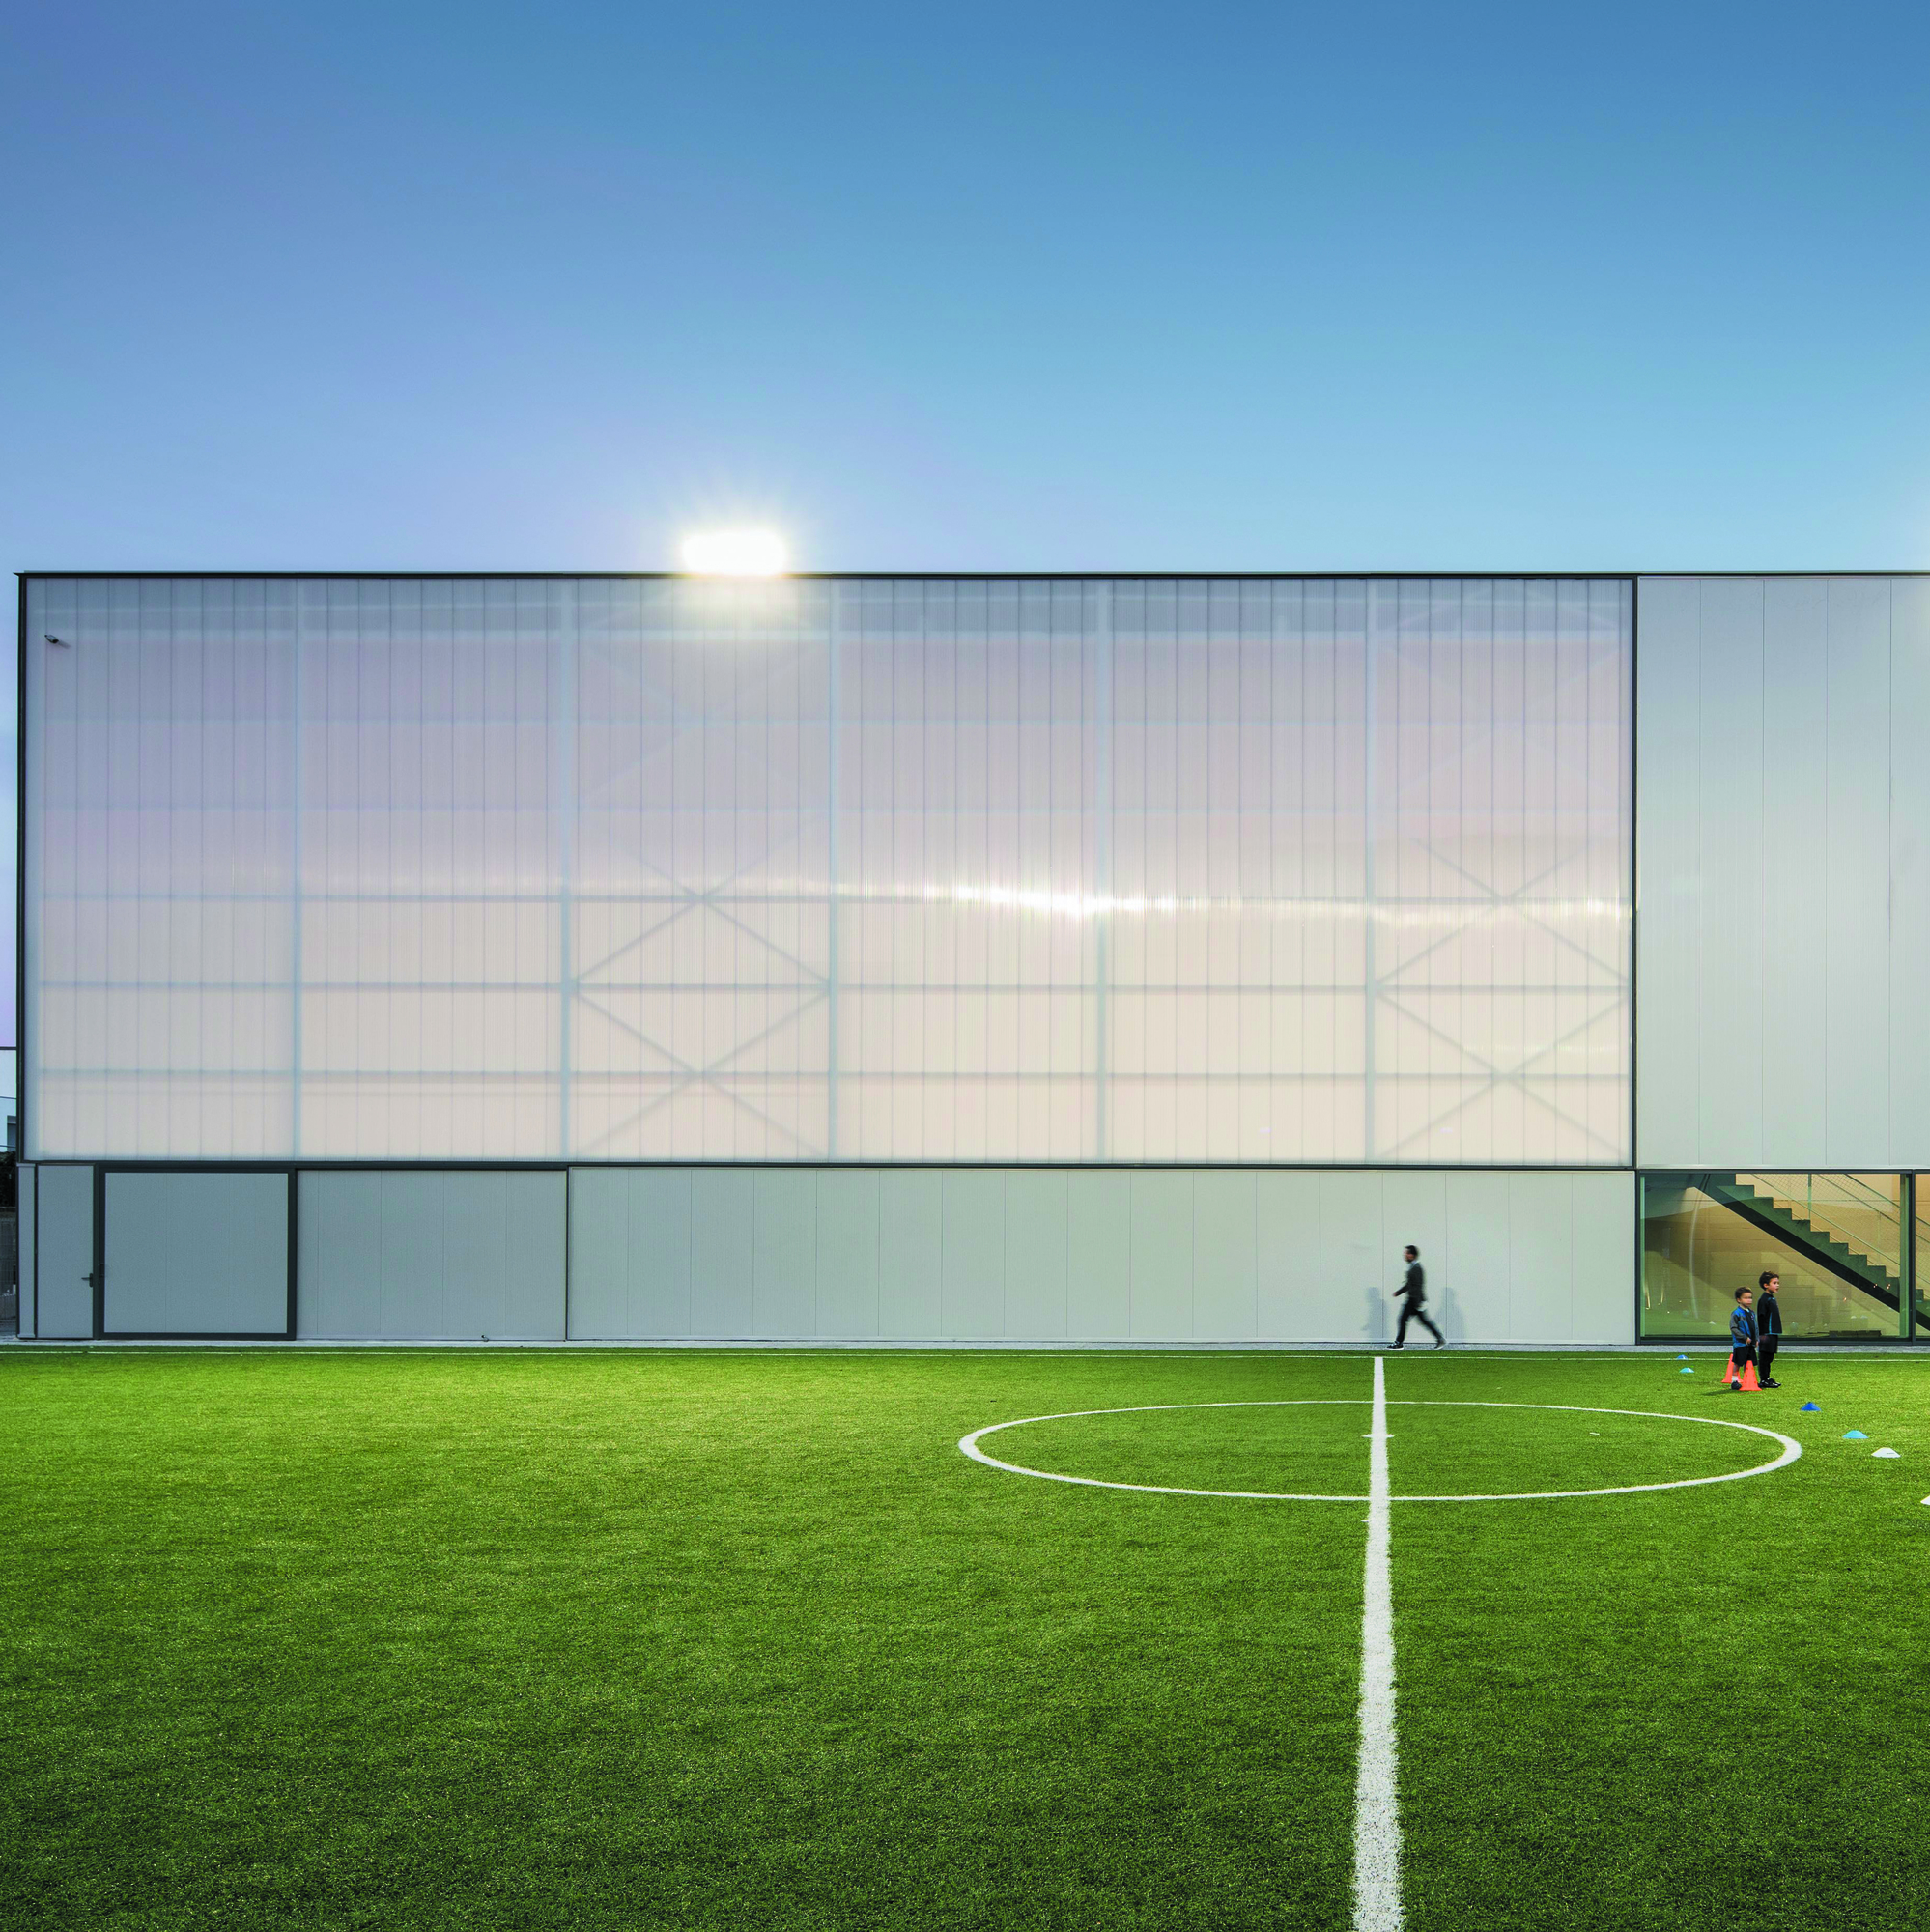 Elfanor Sports Centre, Matosinhos, Portugal - Image 4